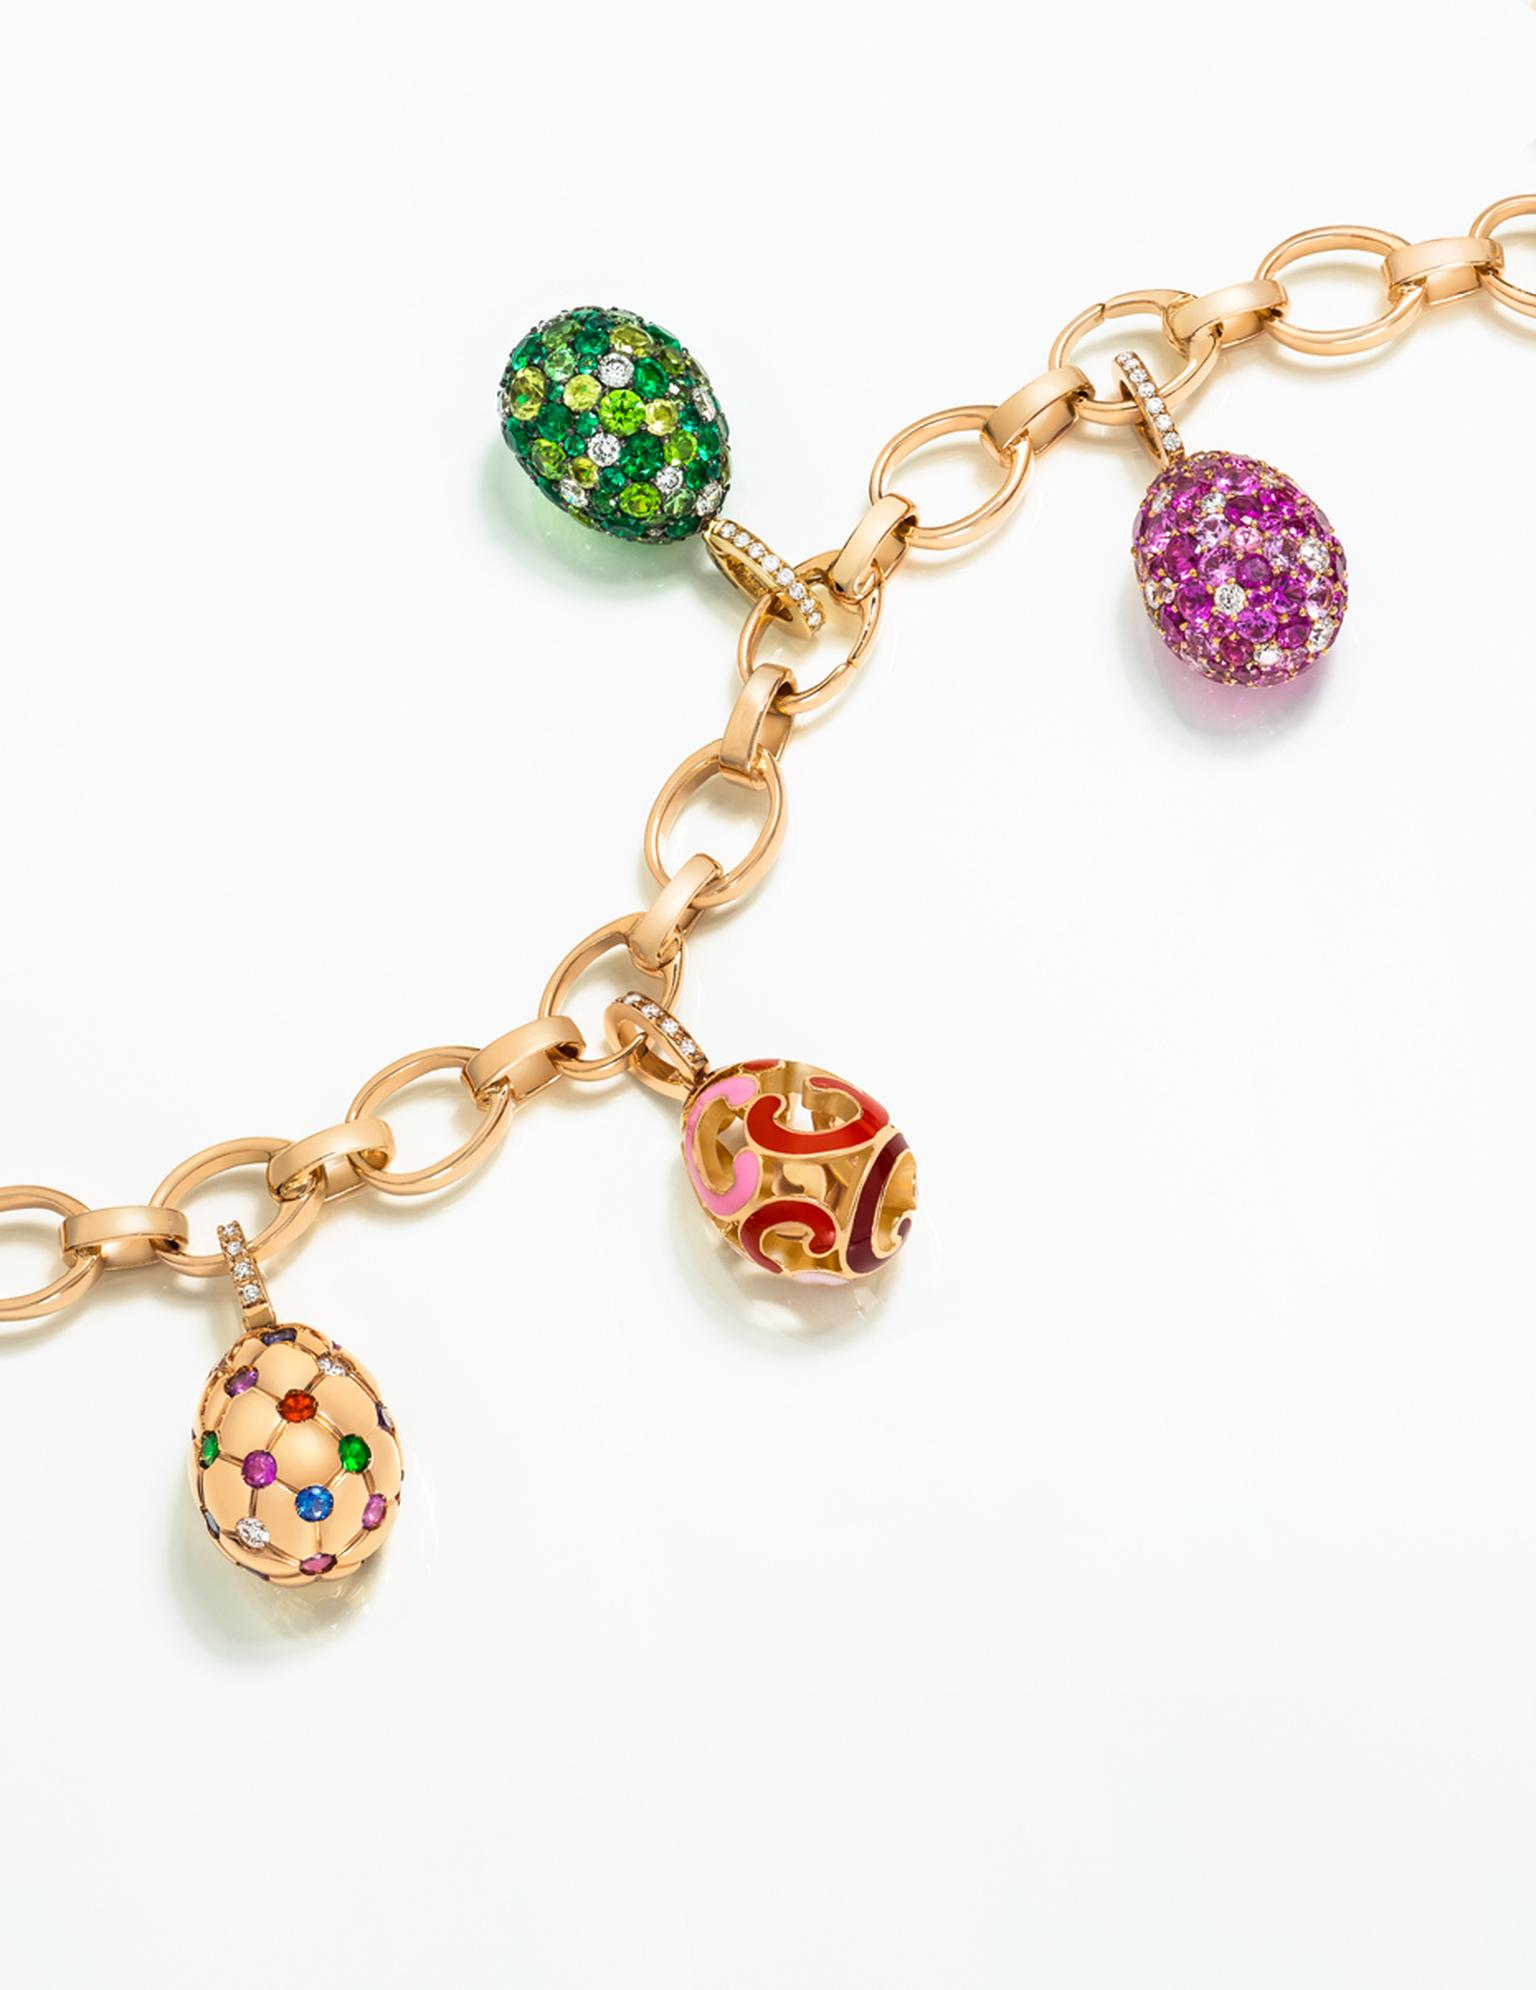 Fabergé's Egg Charms reference moments in Fabergé's history, including the Treillage egg, left, with its quilted pattern of gold dimpled with precious gemstones, which is a miniature interpretation of the 1892 Imperial Easter Egg.